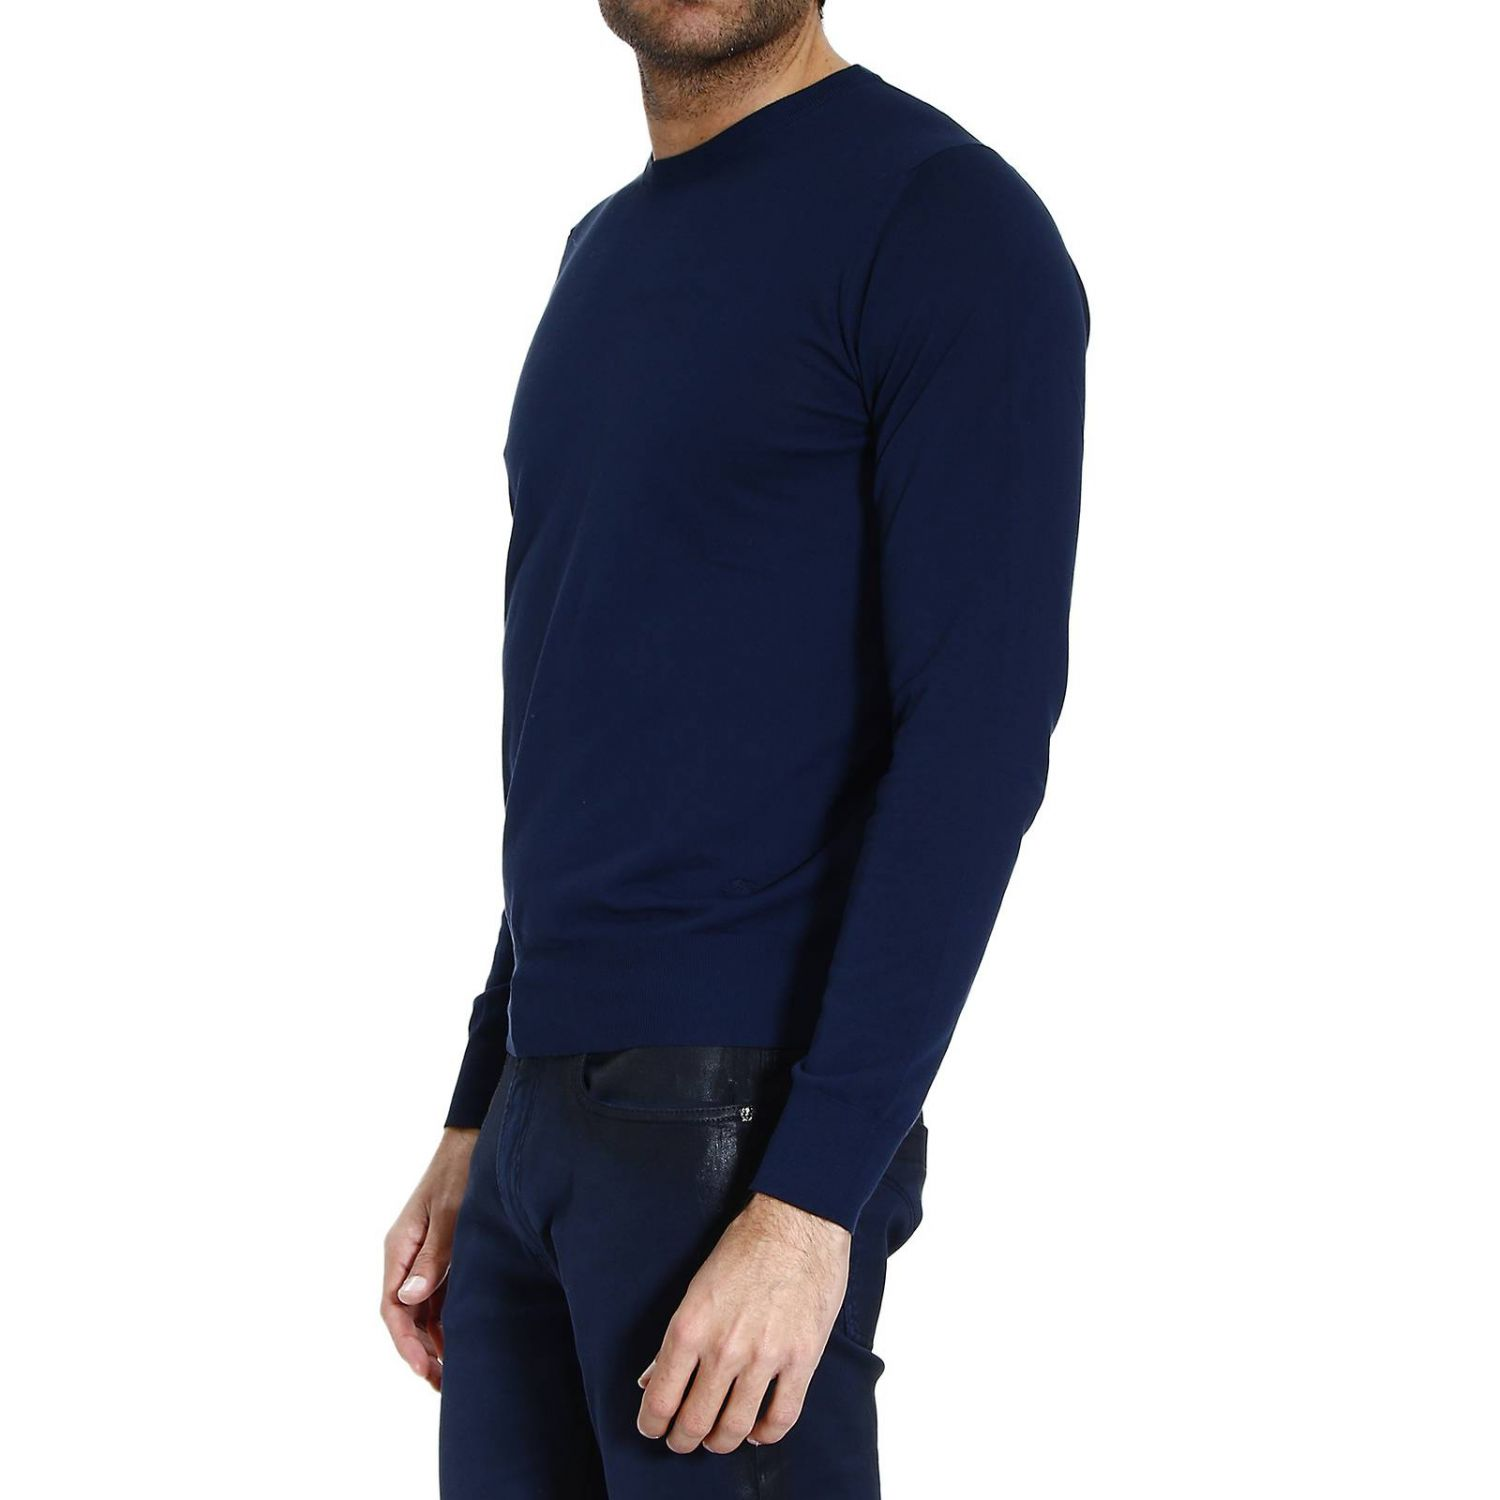 knit crew-neck cotton garment dyed or yarn dyed capo finesse 18 blue 2